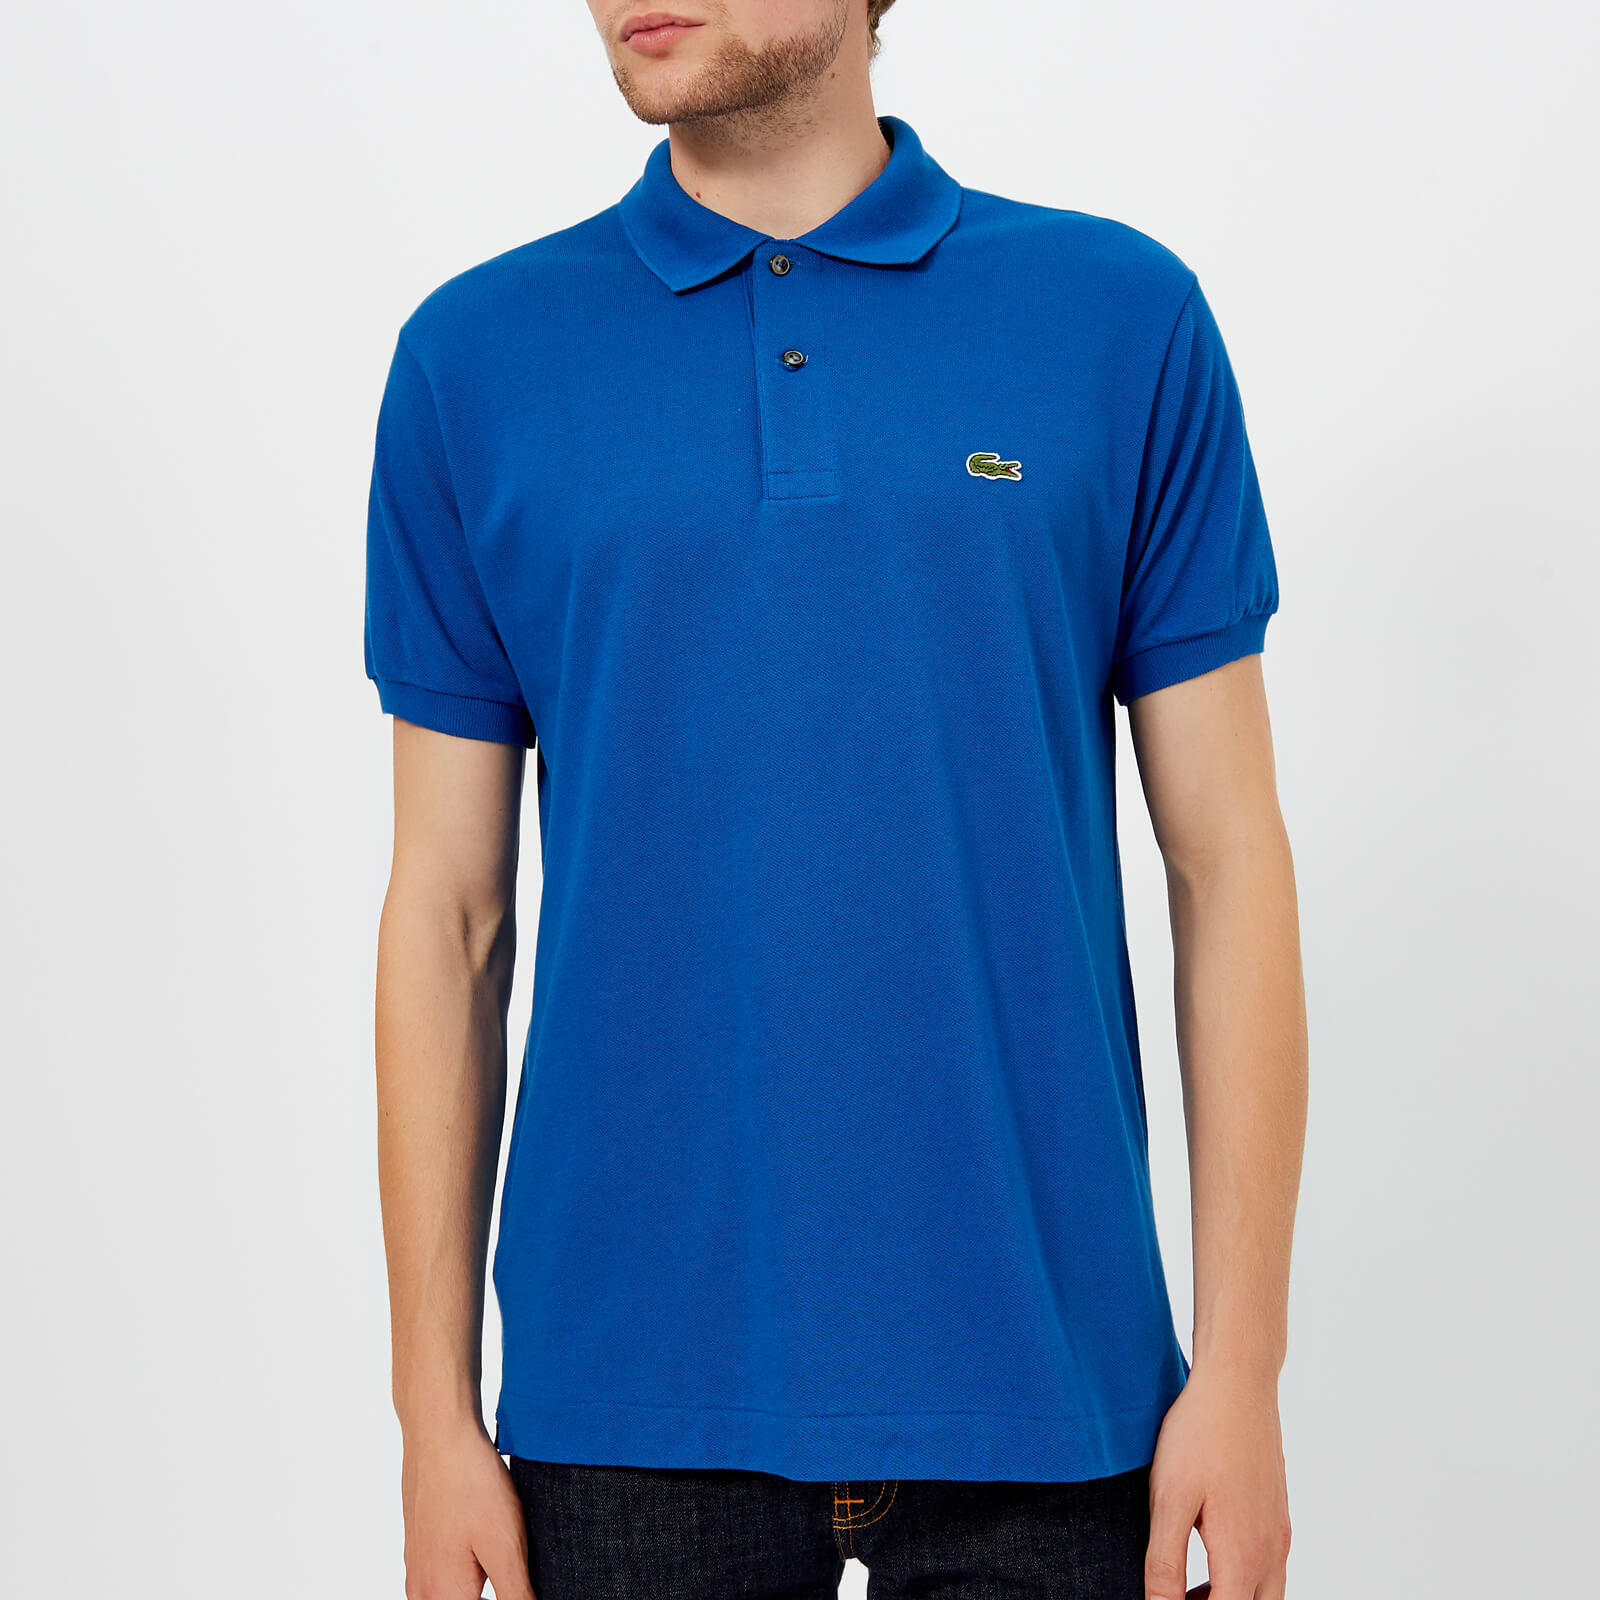 55bdbb7cc0 Lacoste Men's Classic Fit Polo Shirt - Electric